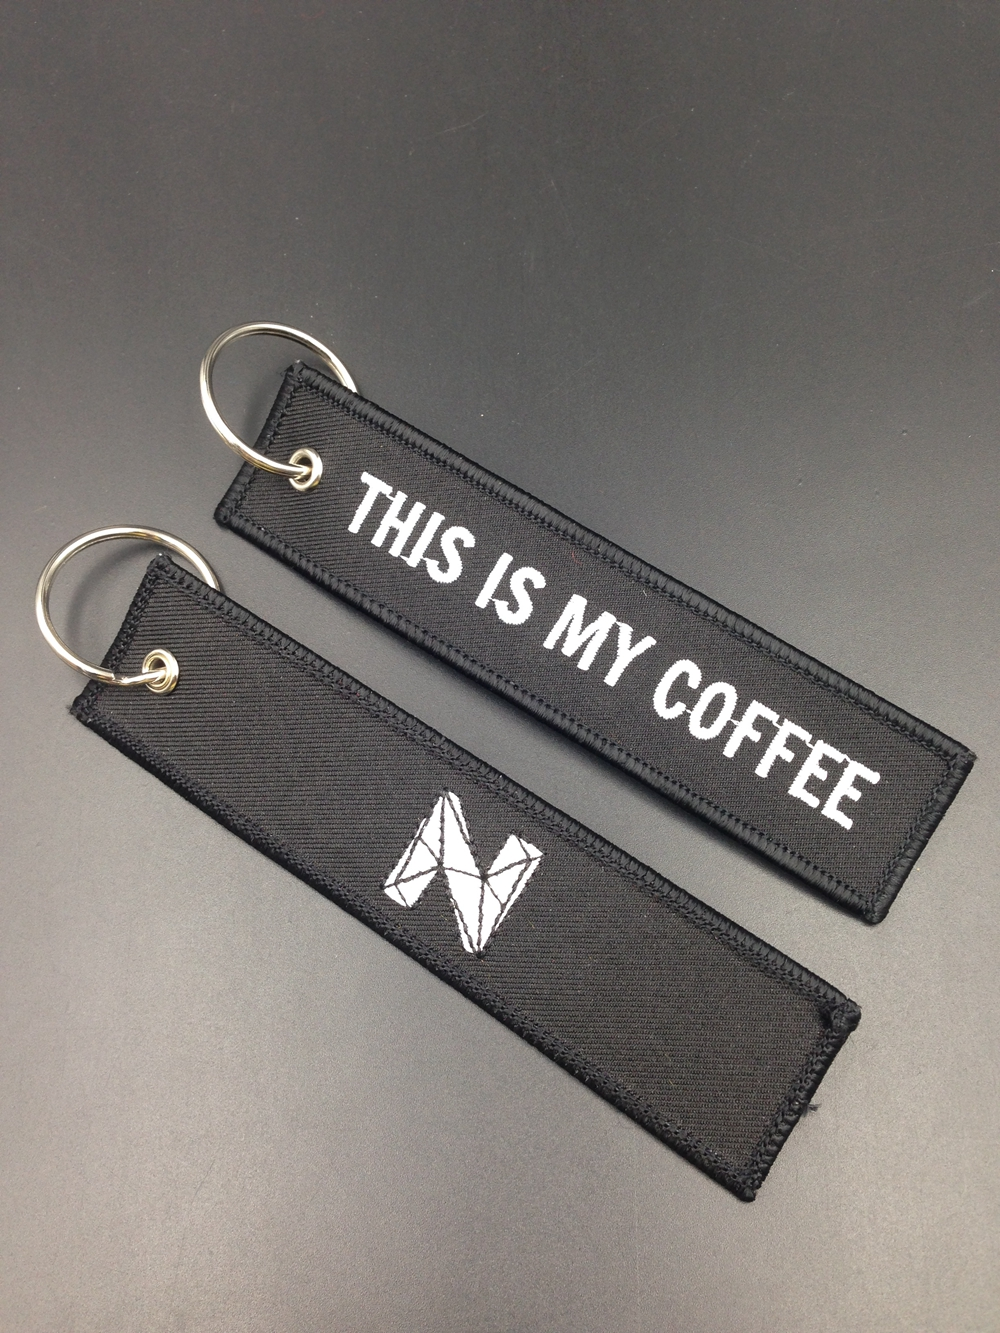 Custom Patches embroidery custom key chain with logo